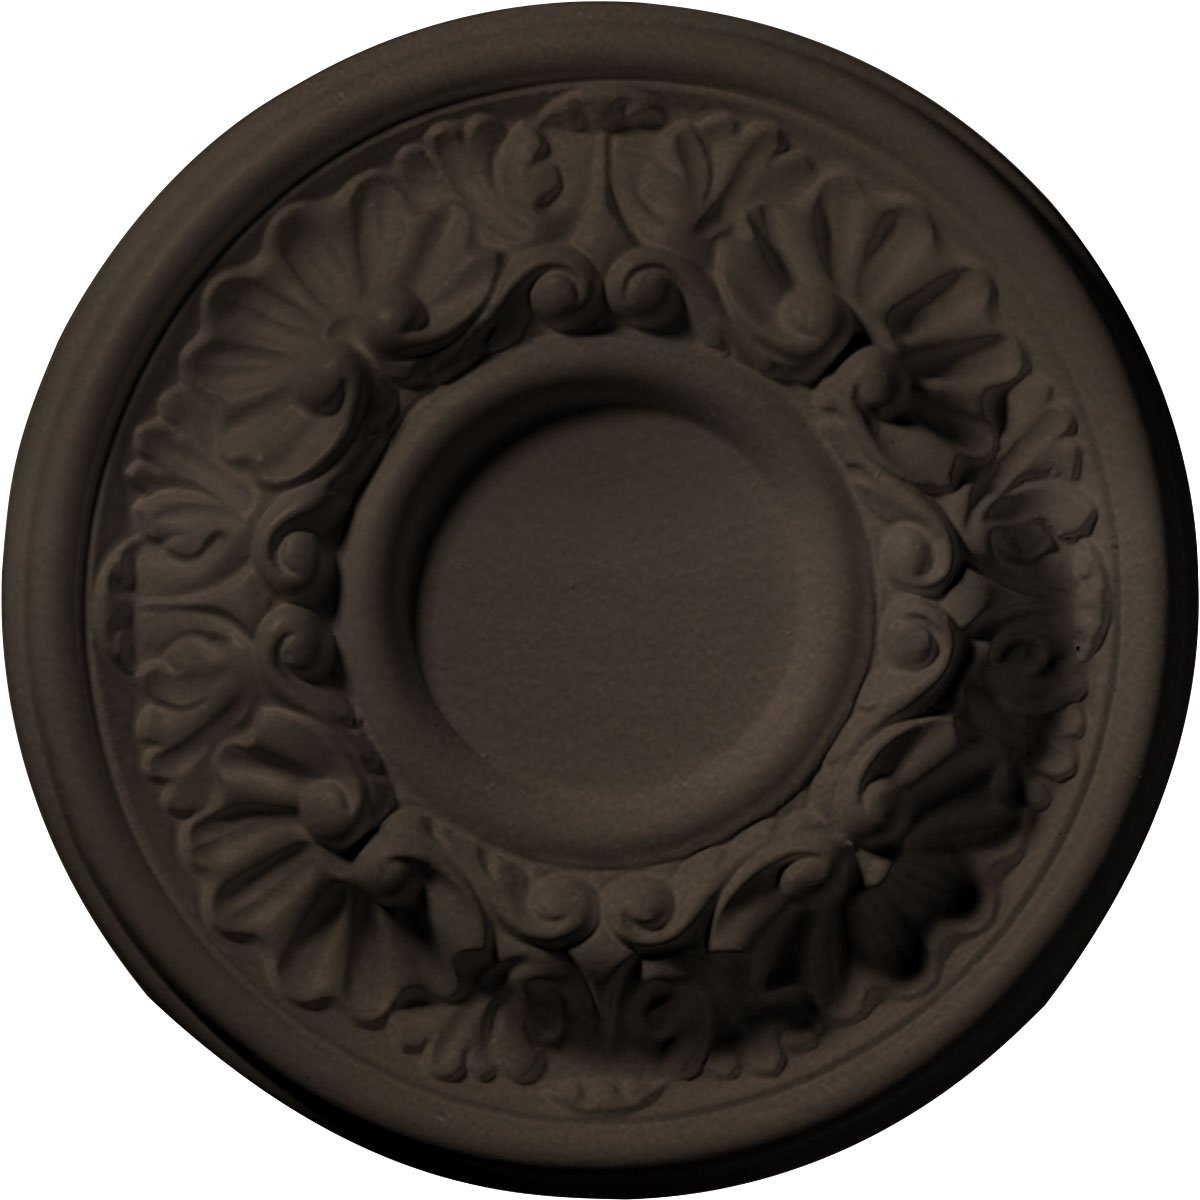 Ekena Millwork CM07ODBZS Ceiling Medallion 7 OD x 1 1/8'' P Odessa (fits Canopies up to 2 1/2''), Bronze